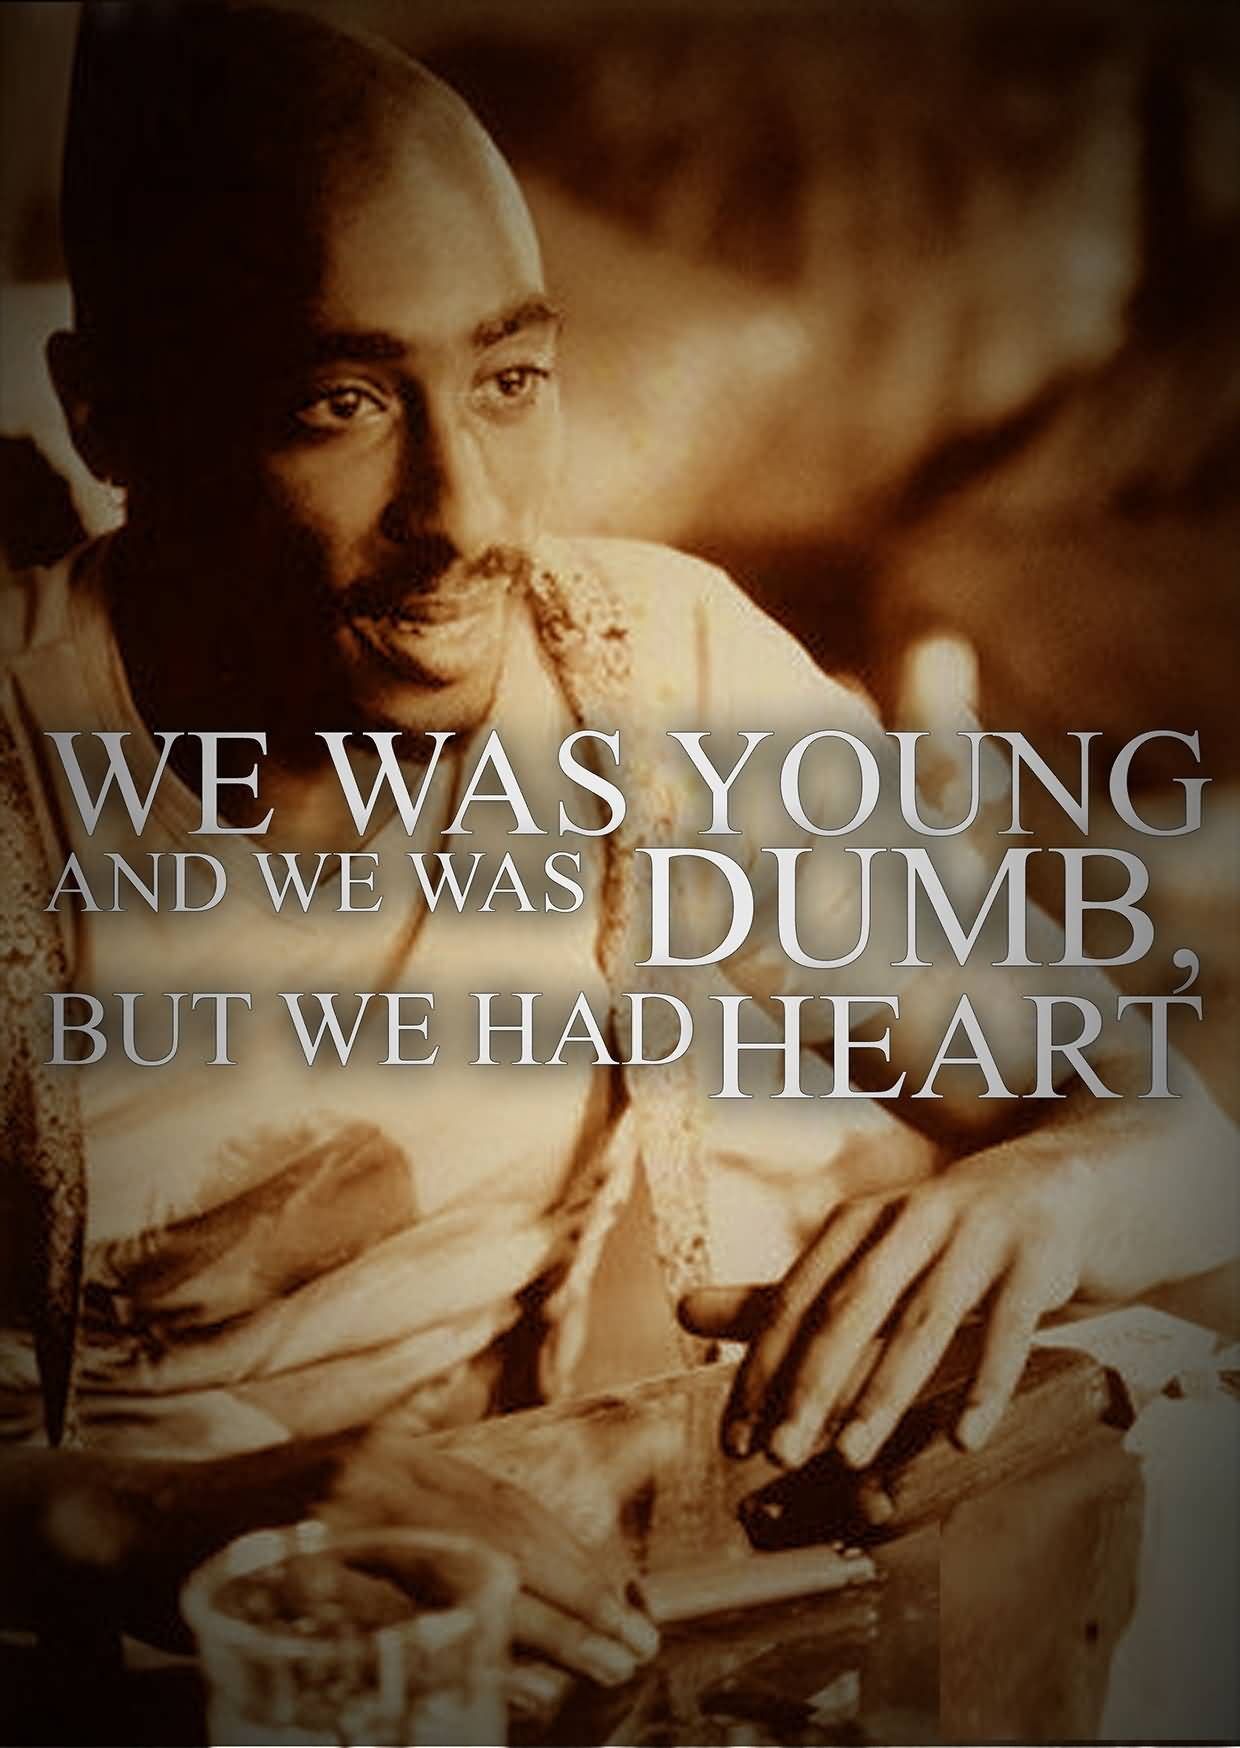 We was young and we was dumb but we had heart